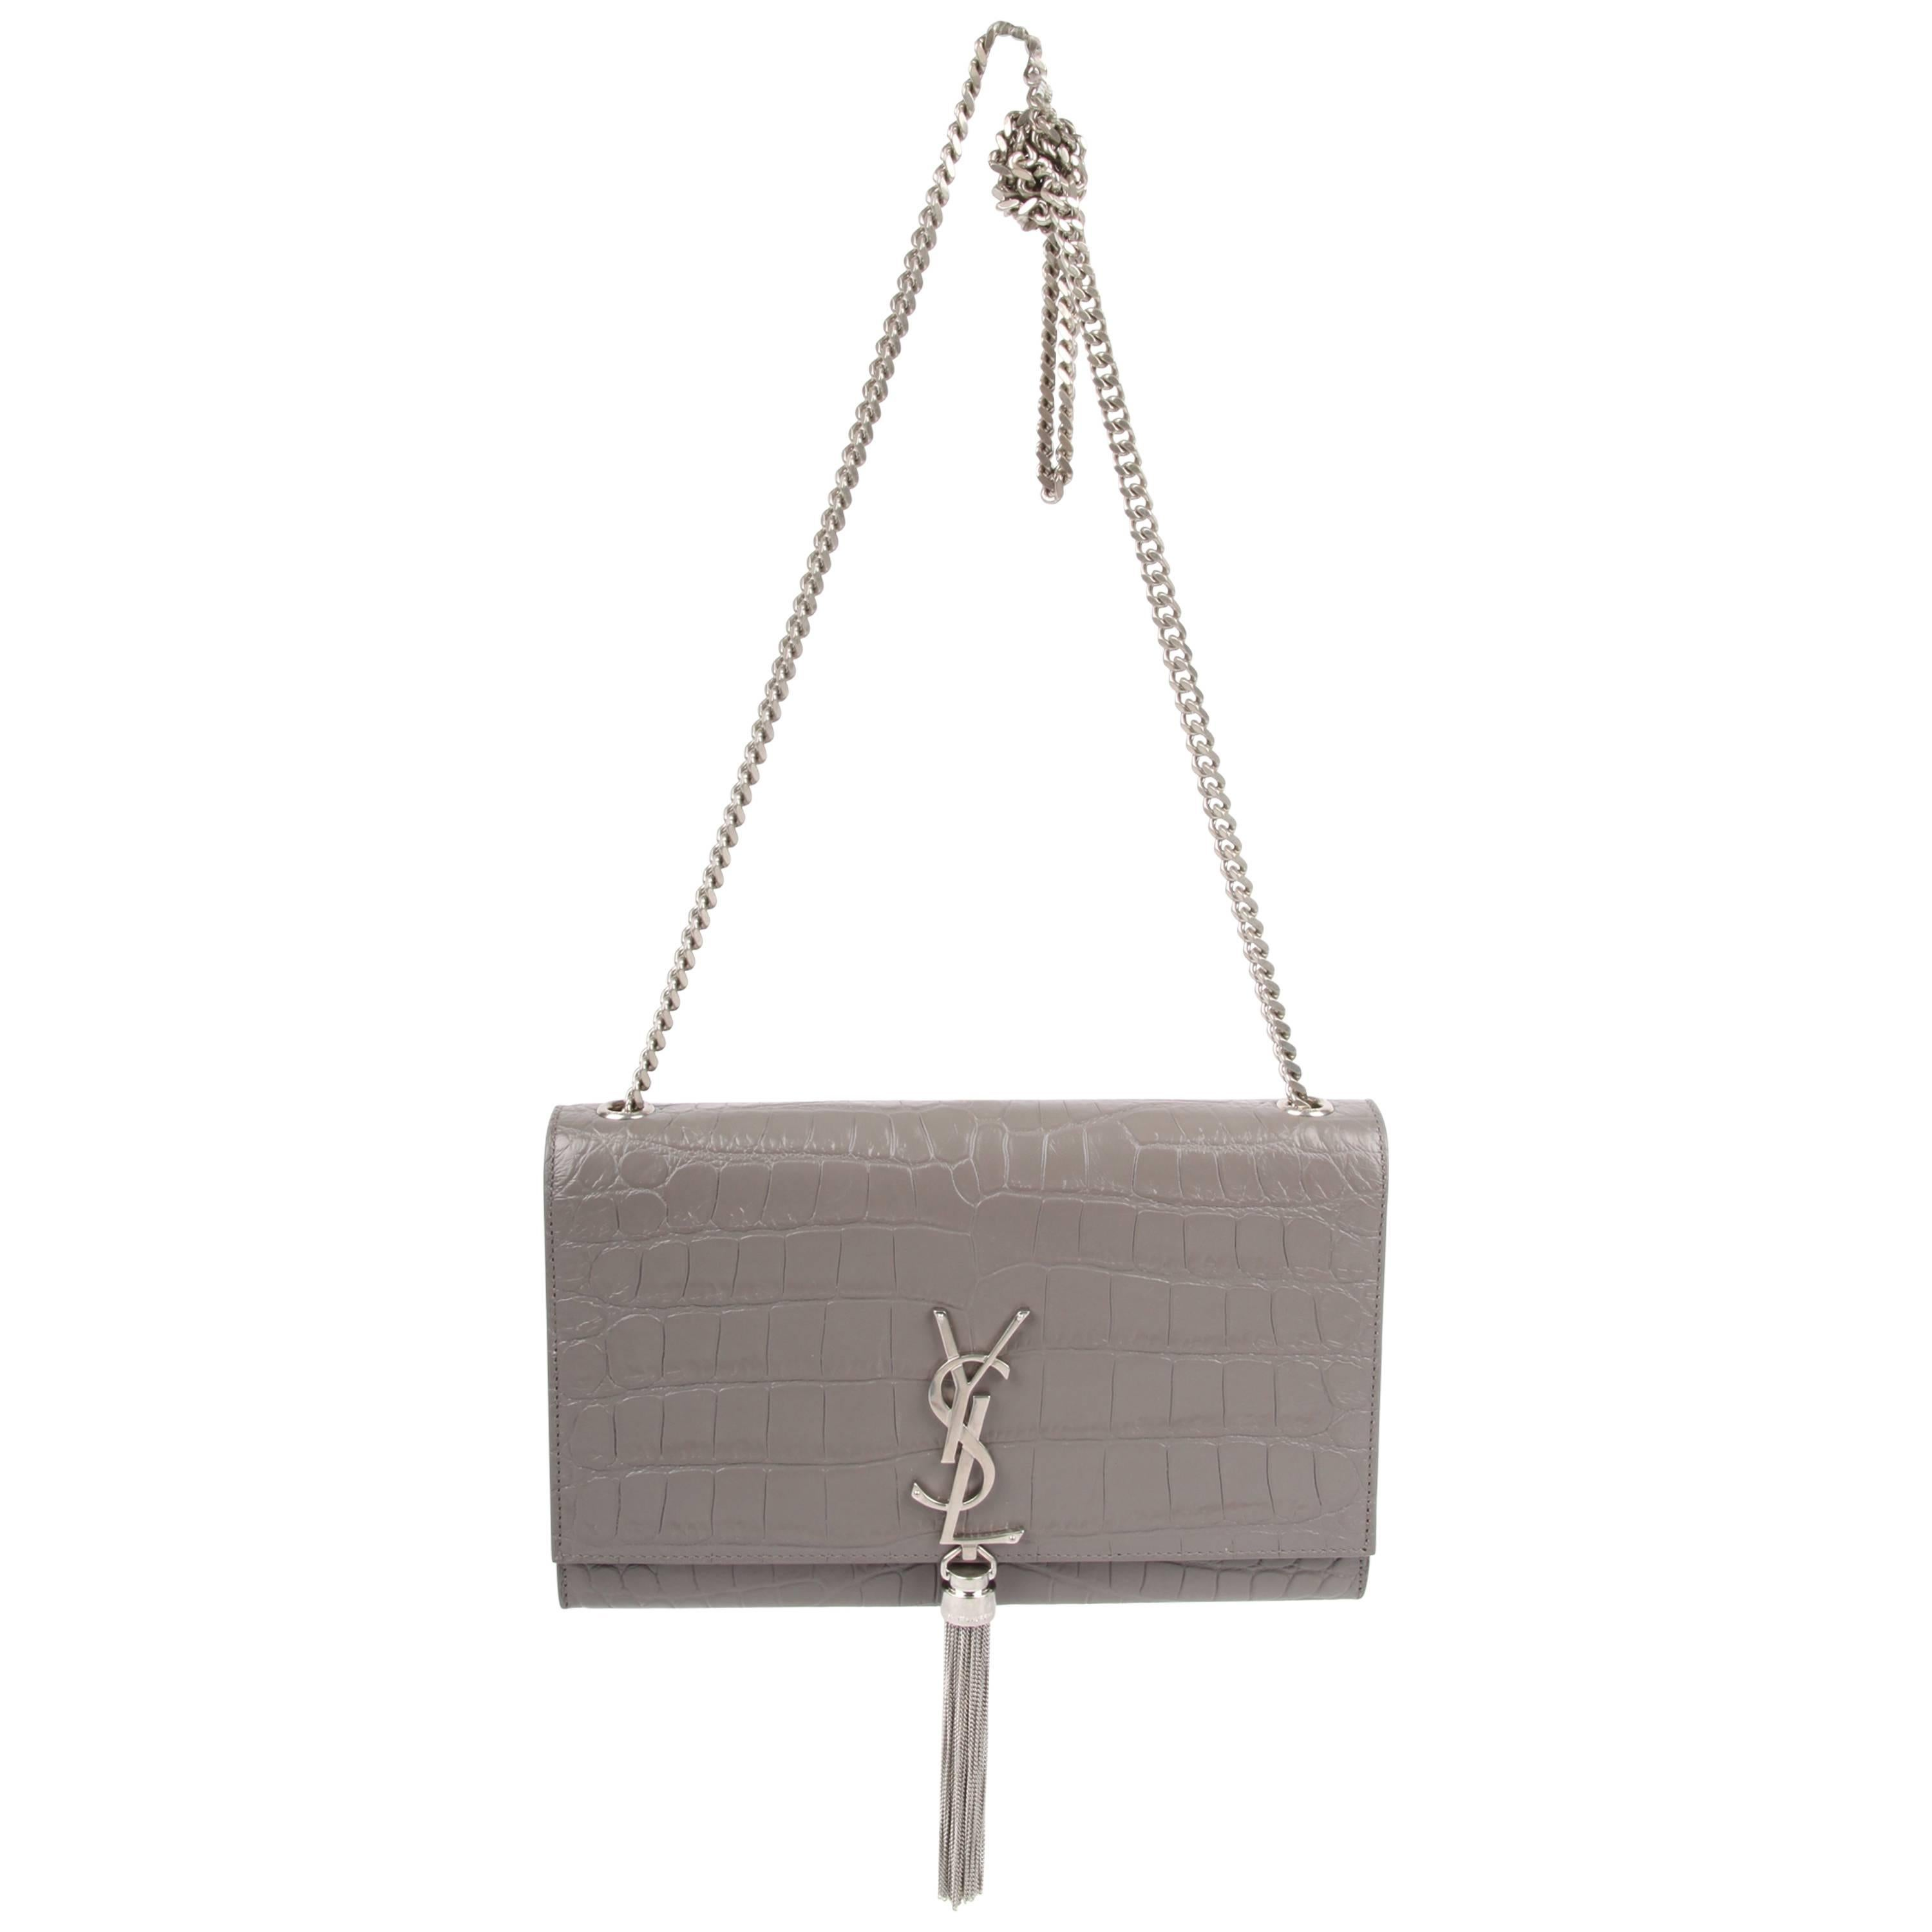 Yves Saint Laurent YSL Monogram Kate Medium Shoulder Bag - taupe at 1stdibs 4d481e5f98